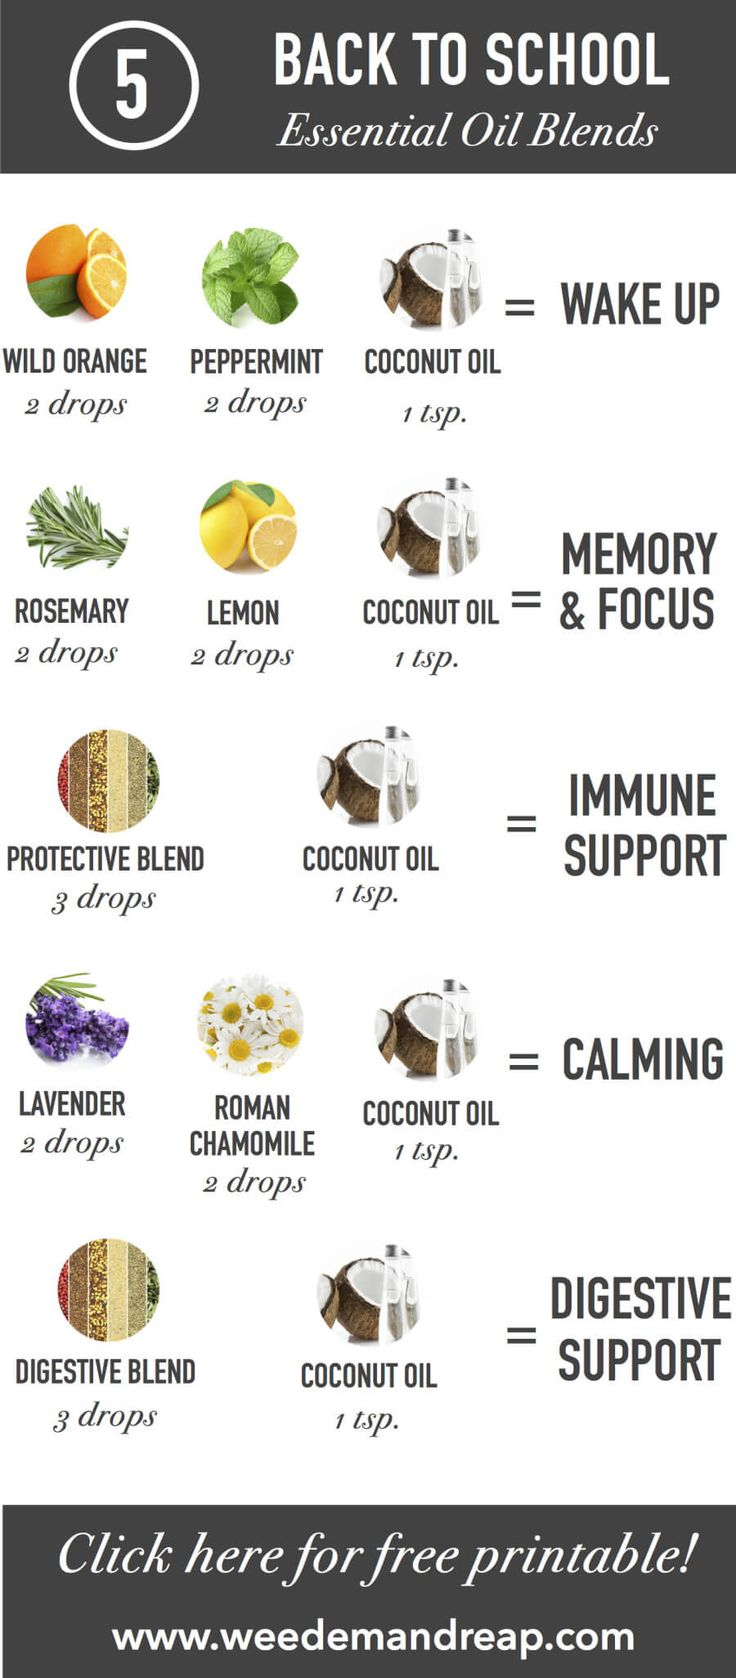 The best essential oil blends for back to school! This is just what I was looking for!